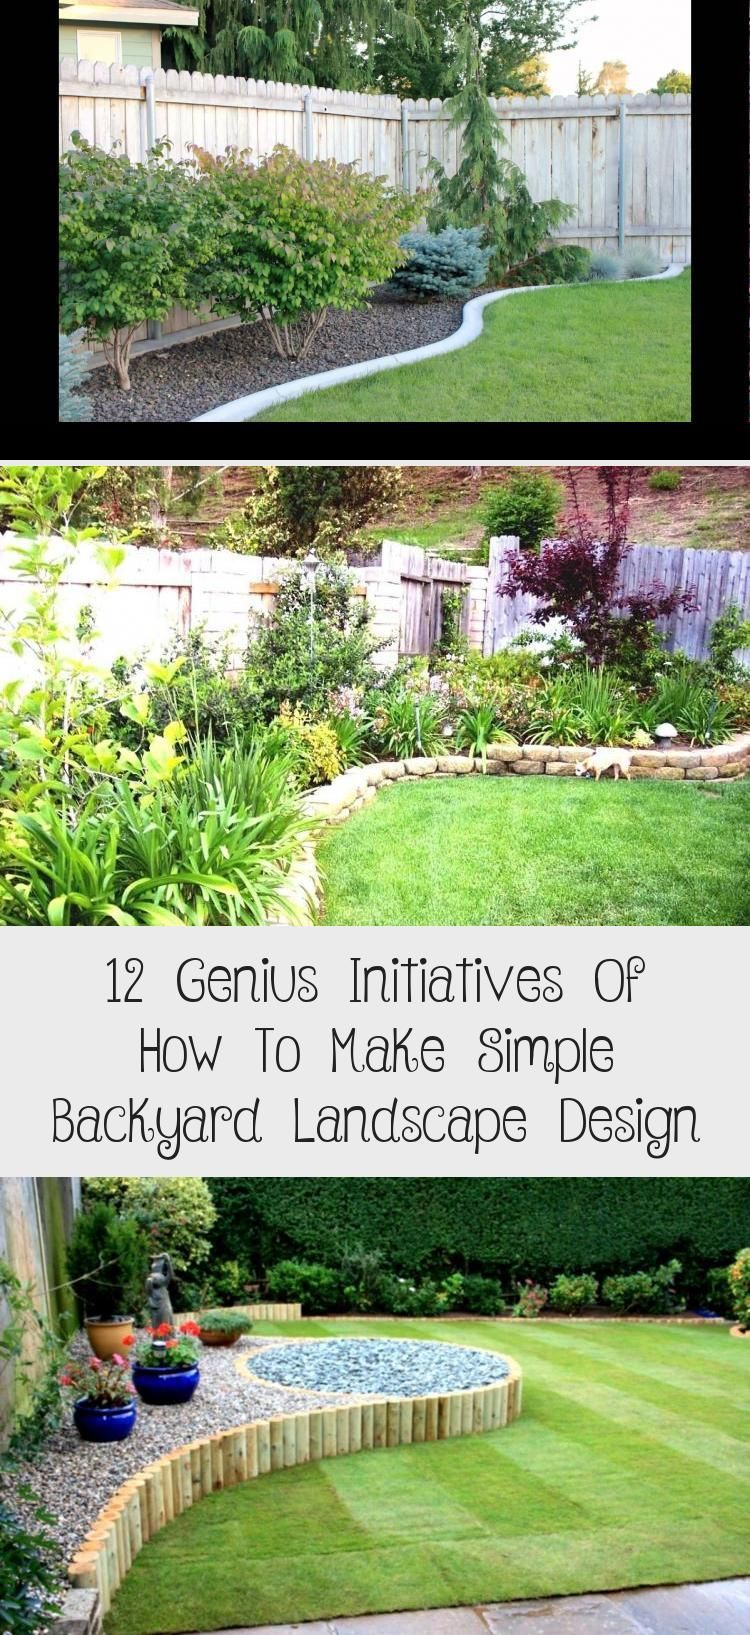 13 Awesome Tricks Of How To Upgrade Backyard Landscaping Pictures Small Backyard Gardens Small Yard Landscaping Backyard Landscaping